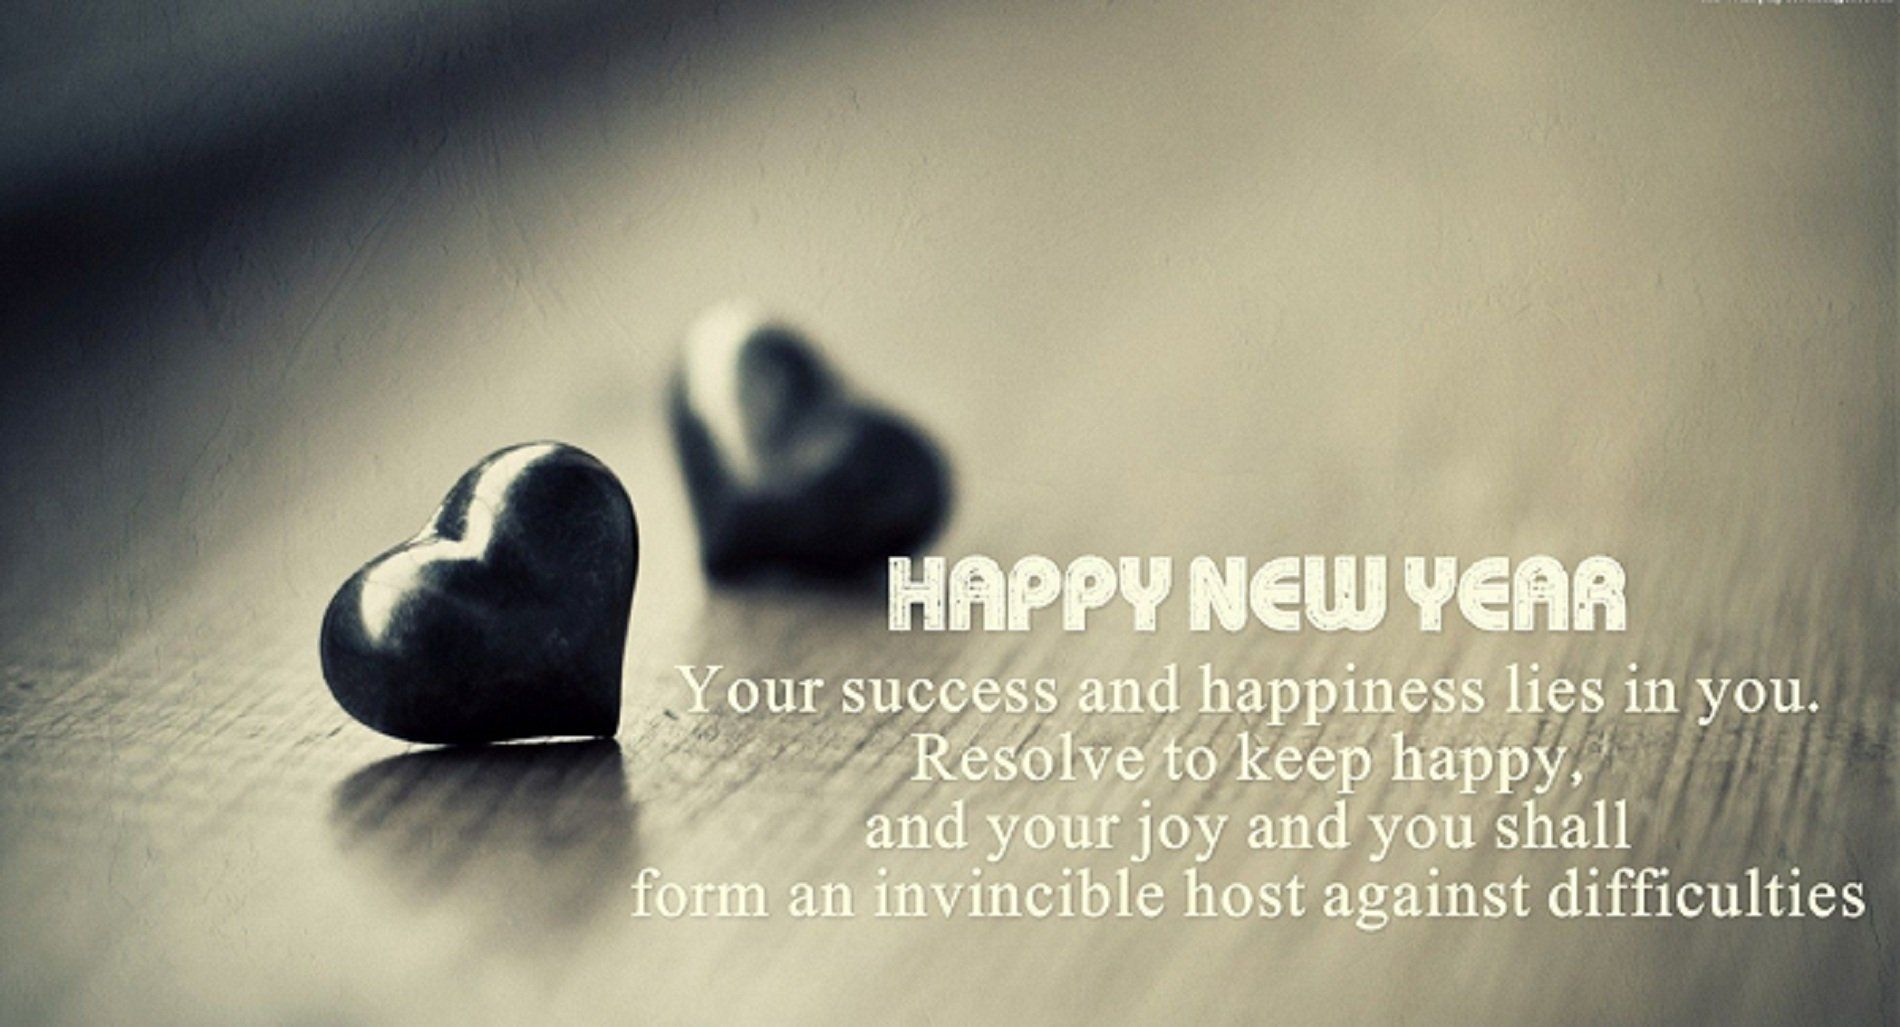 Happy New Year 2017 Inspirational Quotes: Top Best Awesome Happy New Year  Wishes, Images For Friends To Motivate And Inspire Them This New Year.